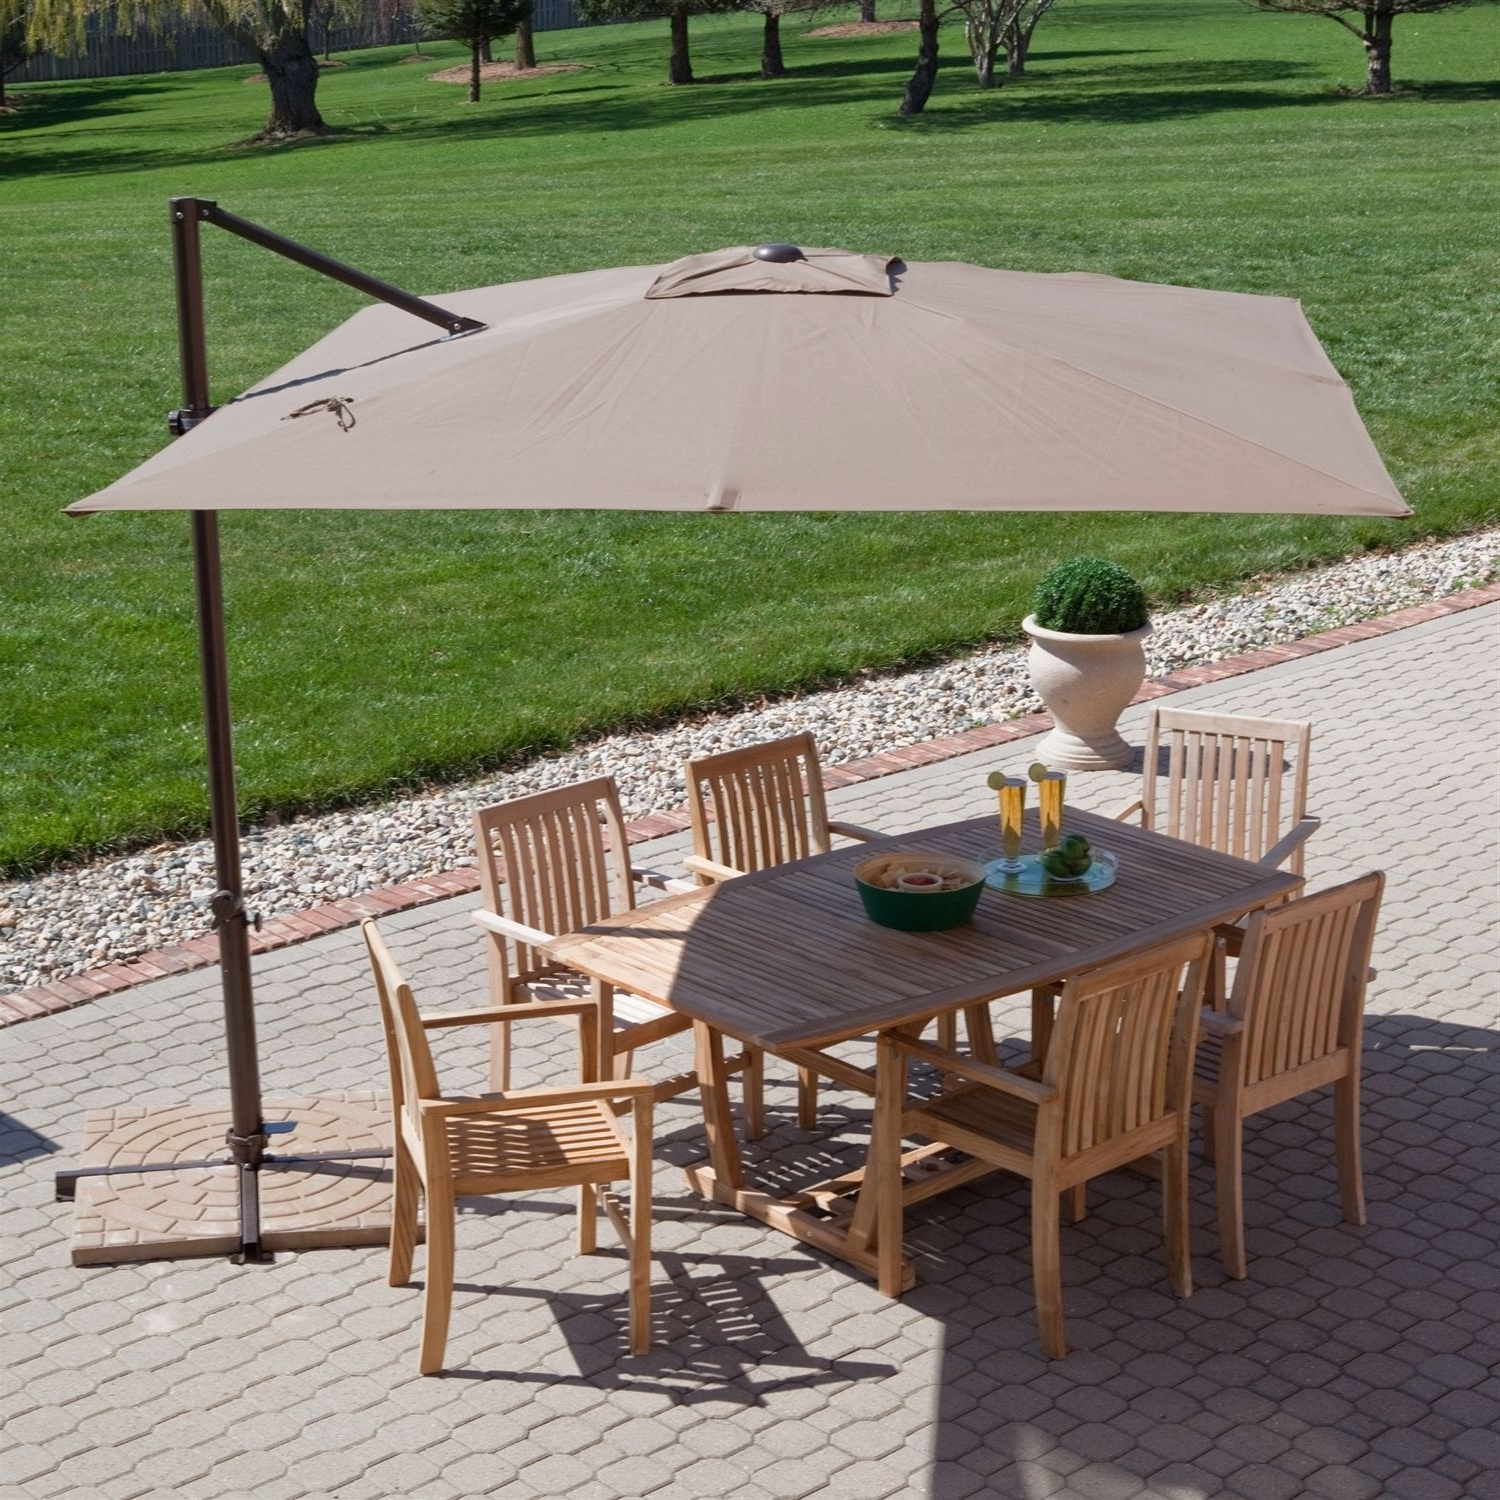 Cantilever Square Parasol We At Versatile Shading Solutions Supply Within Latest Patio Deck Umbrellas (View 3 of 20)